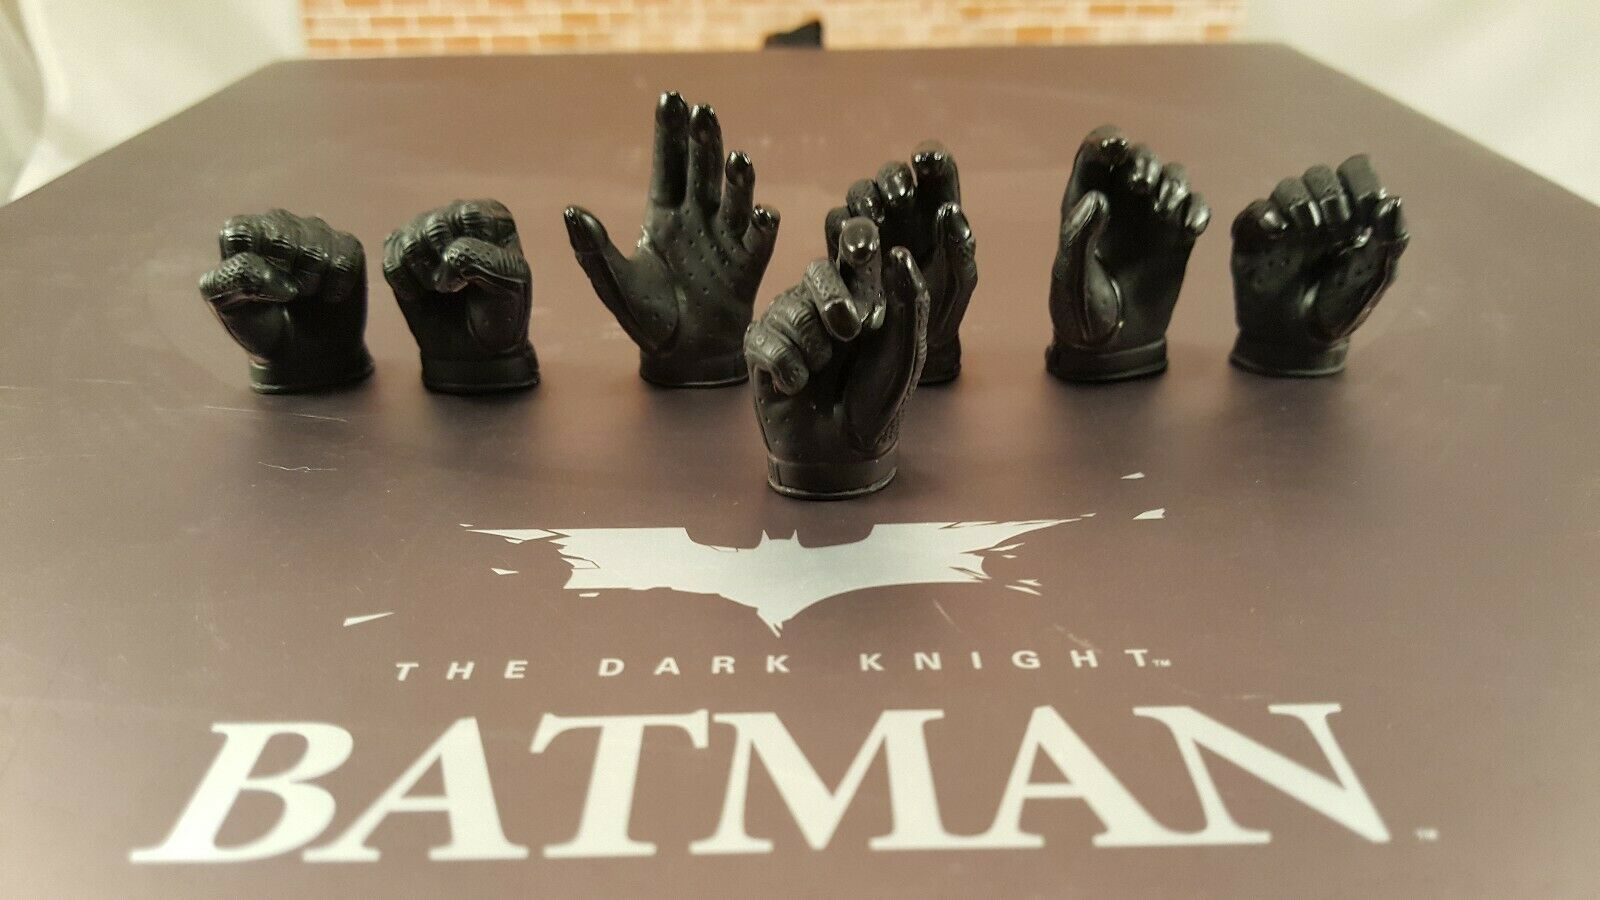 Hot Toys DX02 Dark Knight TDK Batman 1 6 scale 12  action figure's 7 hands only